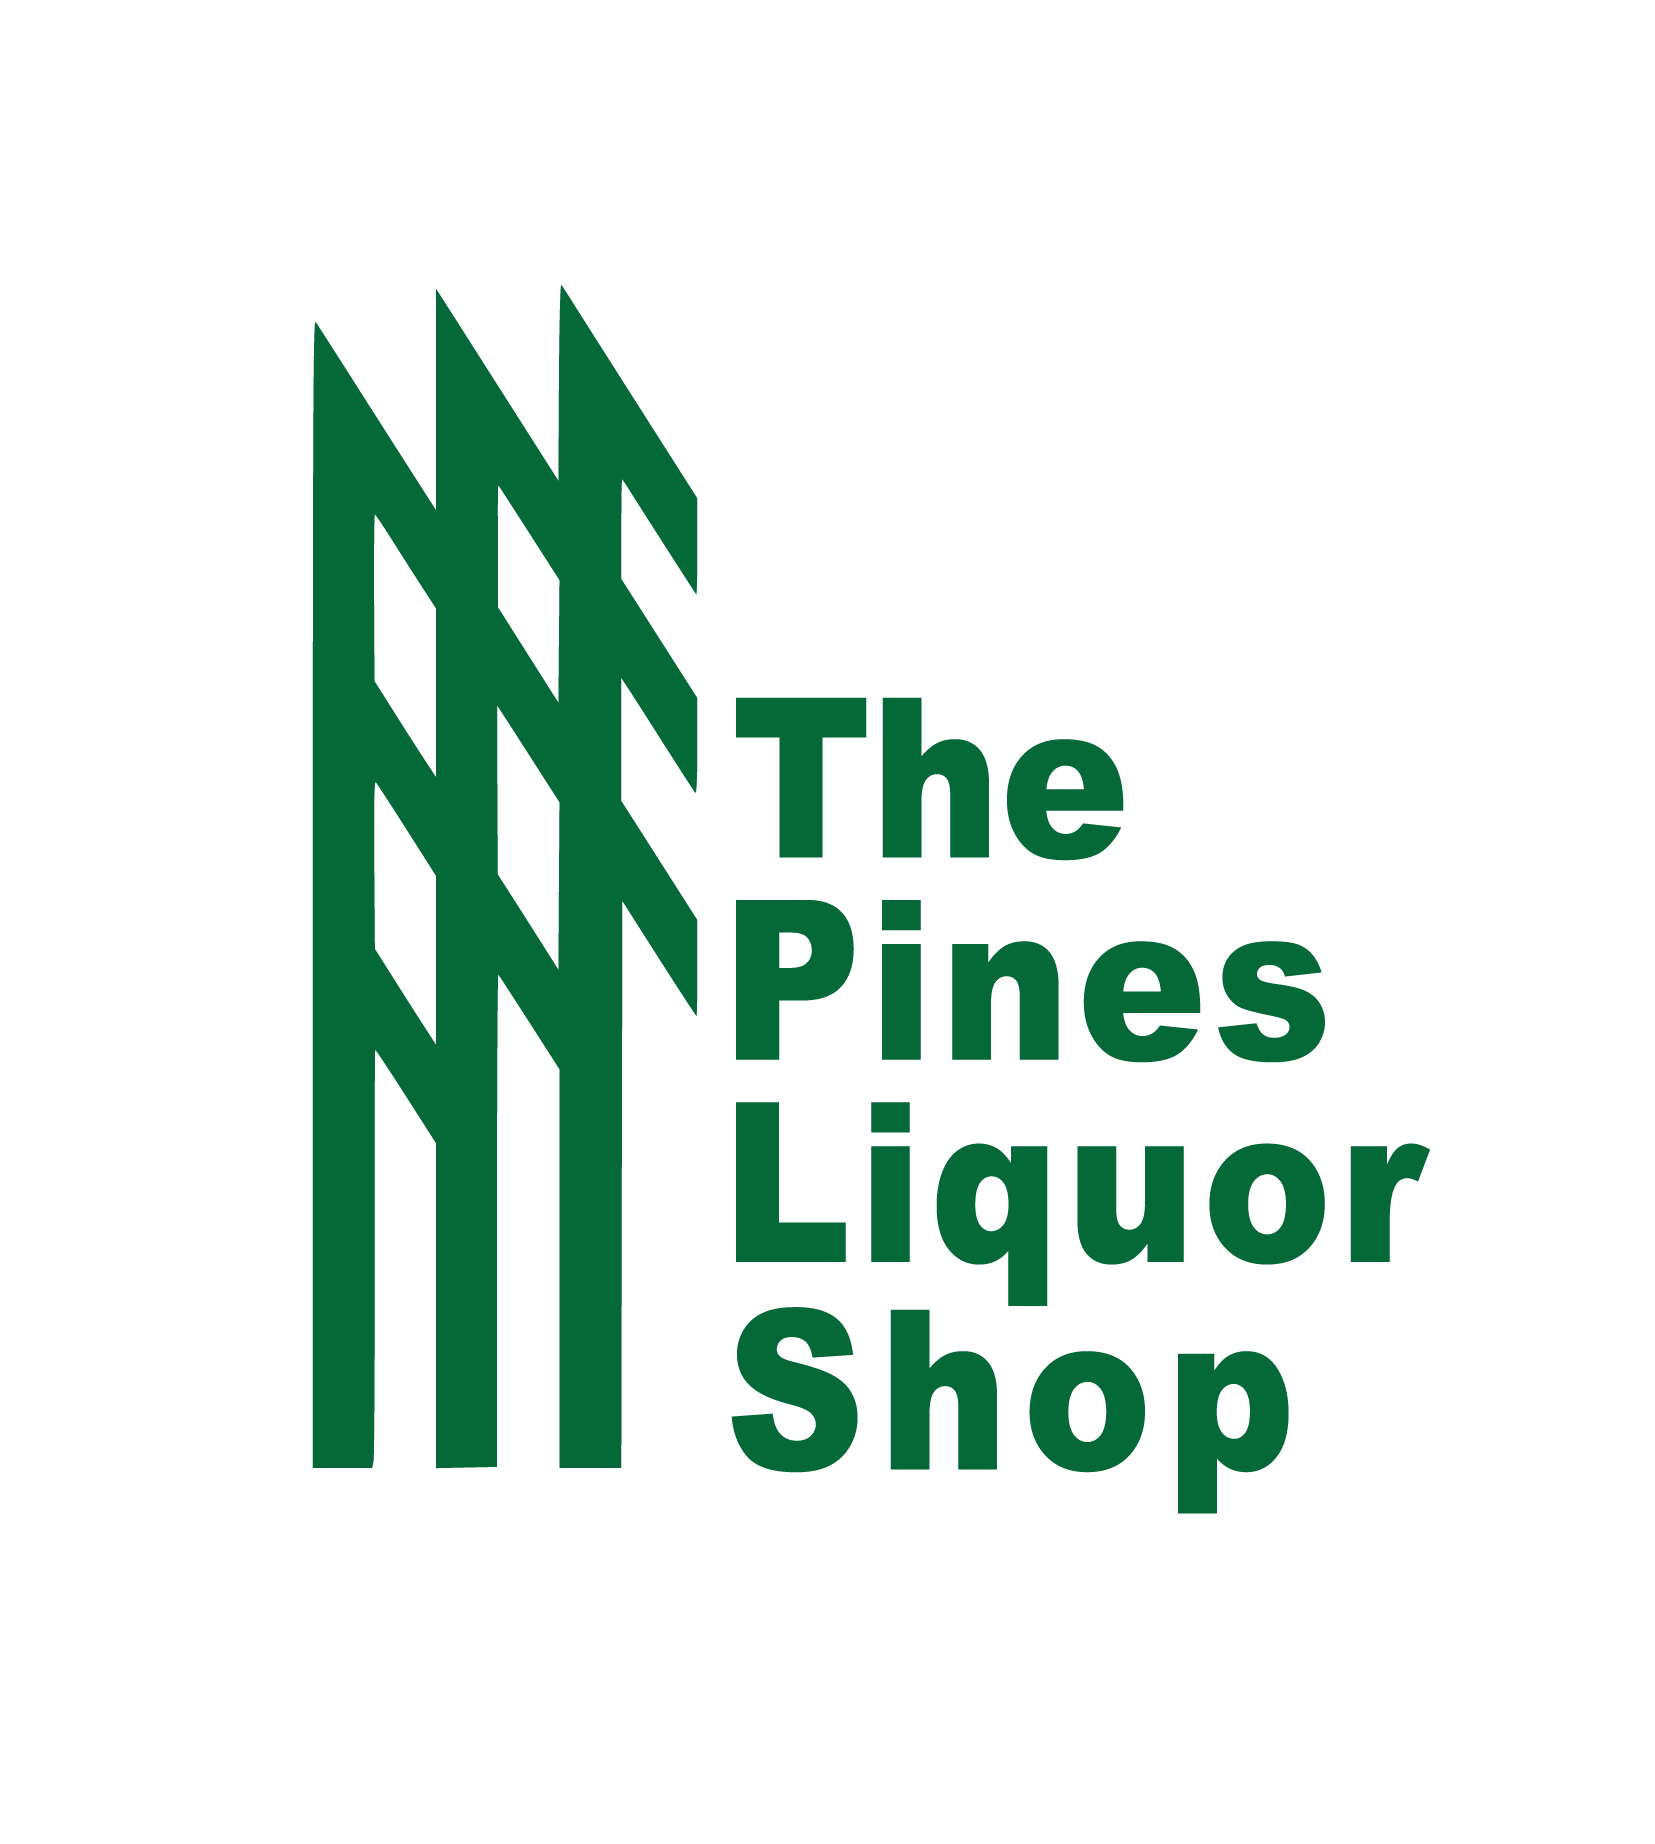 ThePines_logo-01.png